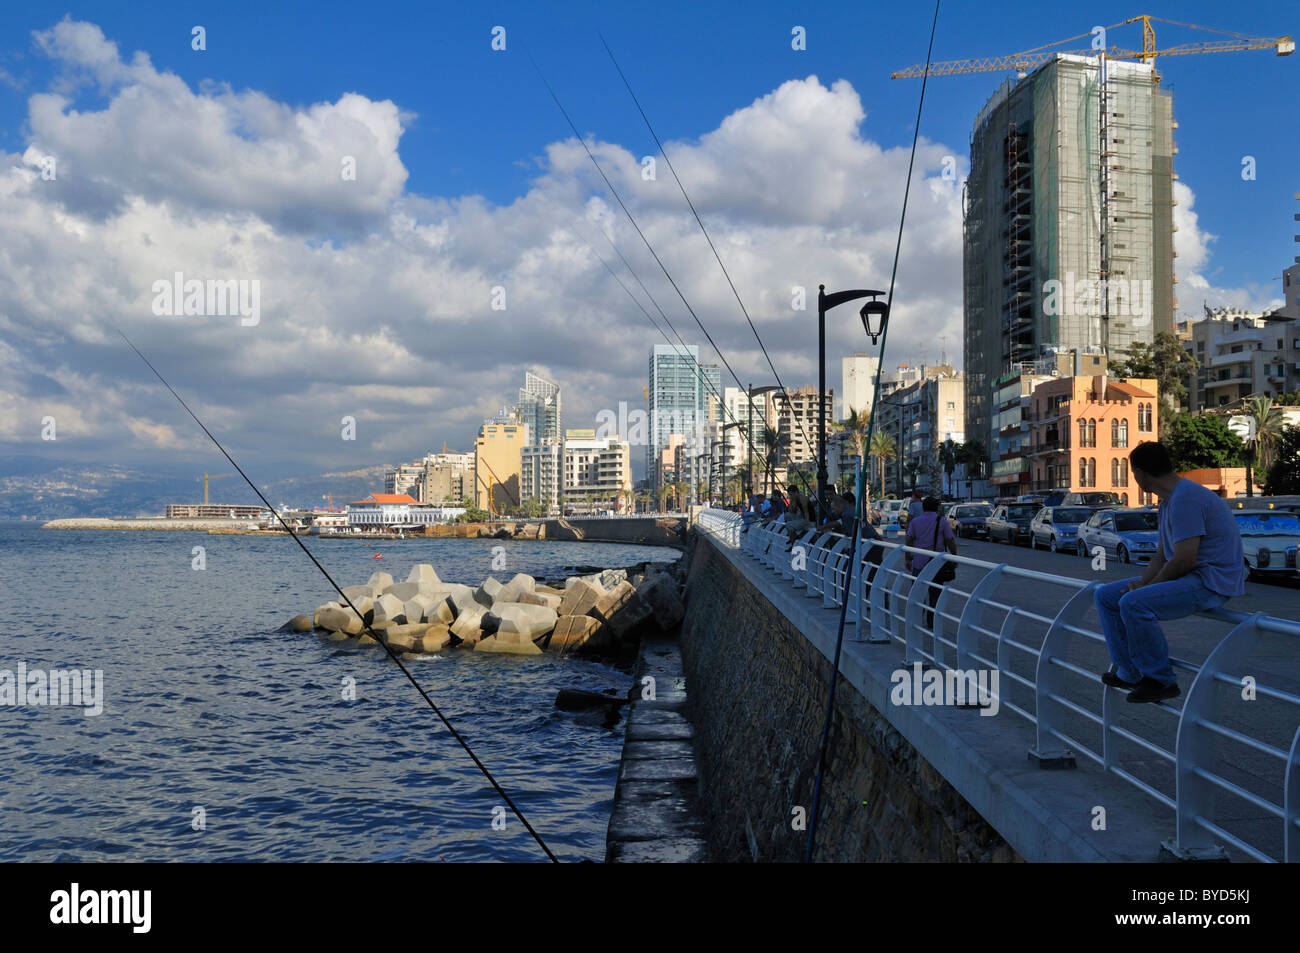 Corniche of Beirut, Beyrouth, Lebanon, Middle East, West Asia - Stock Image